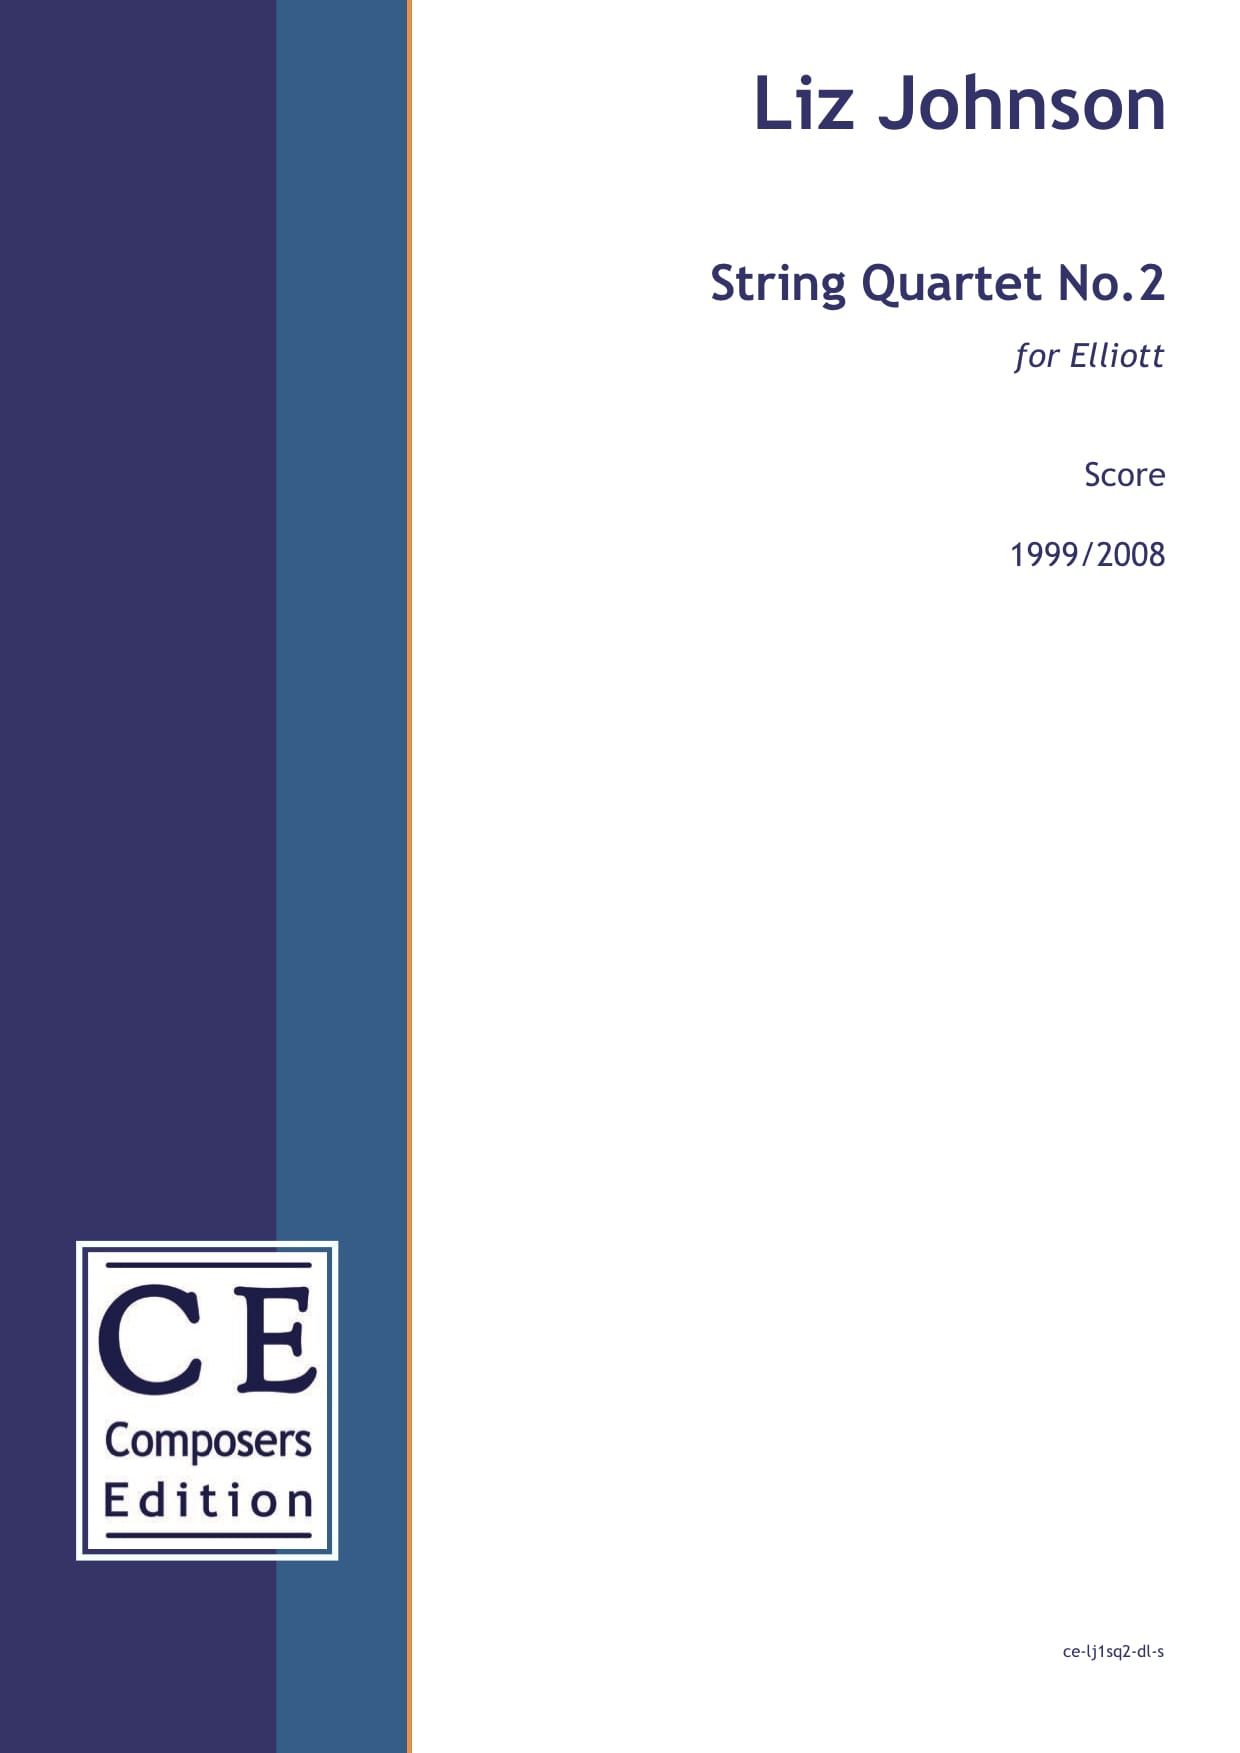 Liz Johnson: String Quartet No.2 for Elliott